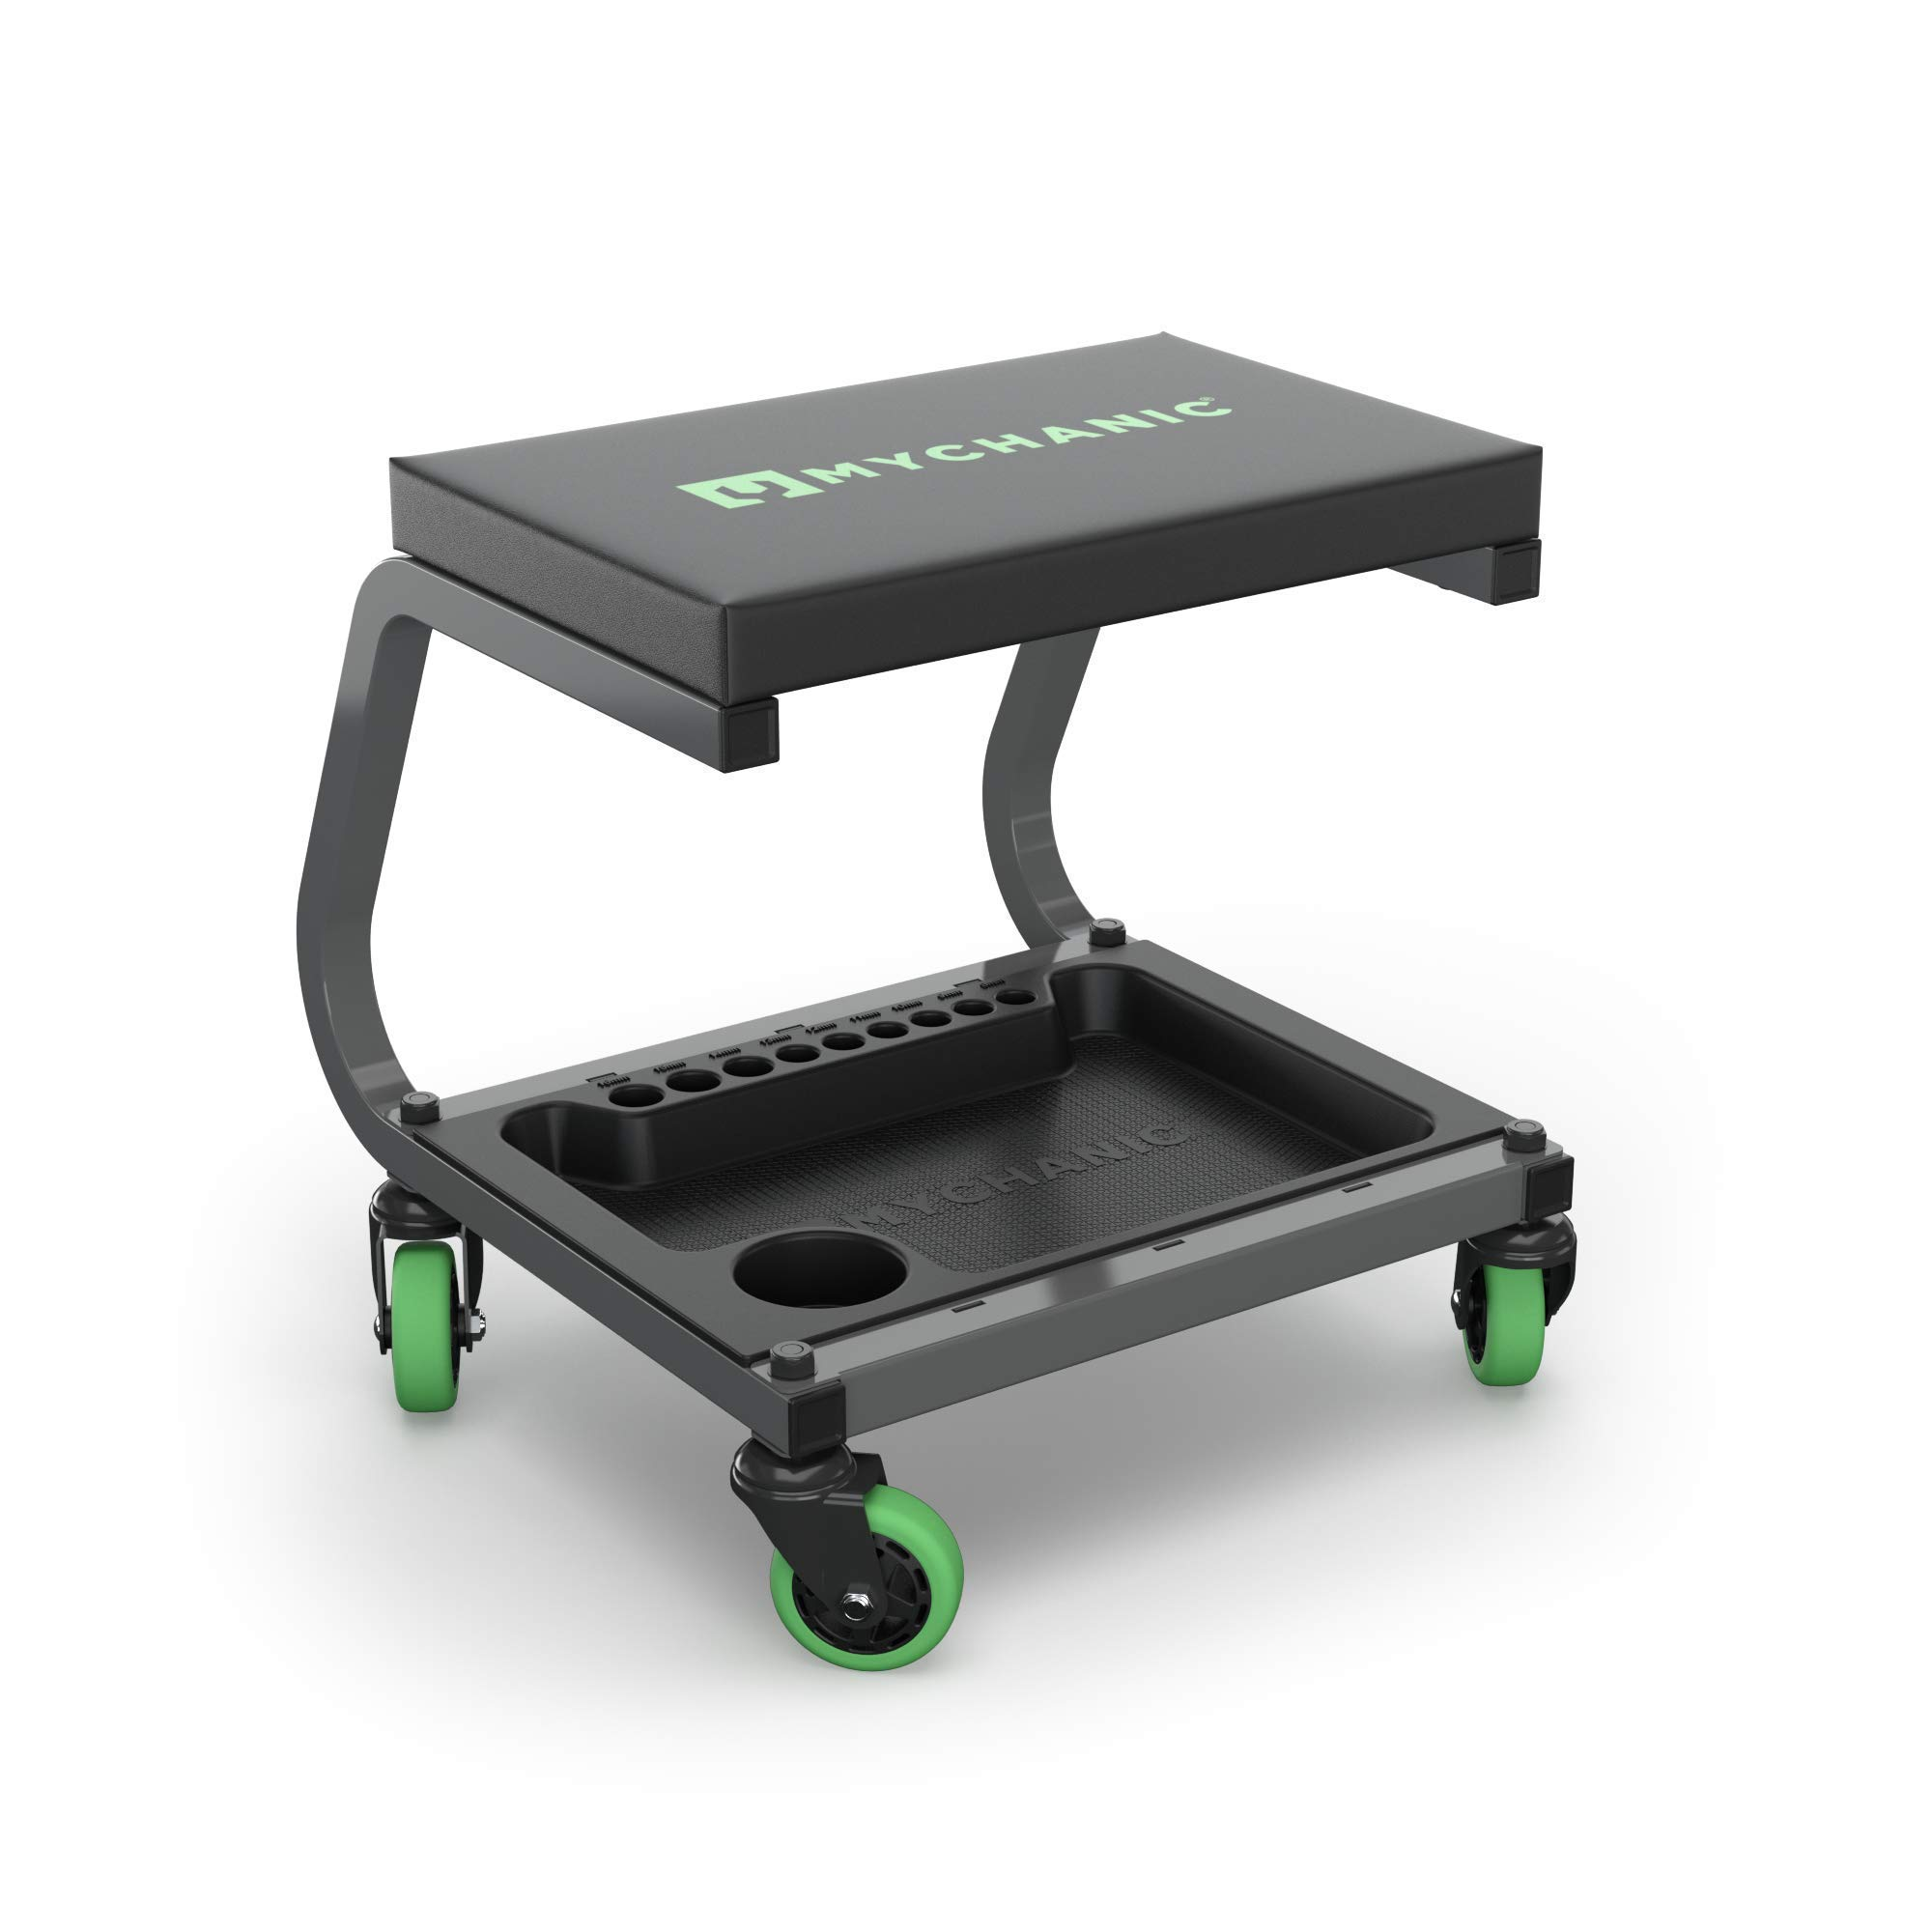 MYCHANIC Fastback Shop Stool - Rolling Garage Stool - 350 Lb Capacity - 3-Inch Casters - Tool Tray with Socket Organizer - Padded Seat - Powder Coated Steel Frame by MYCHANIC